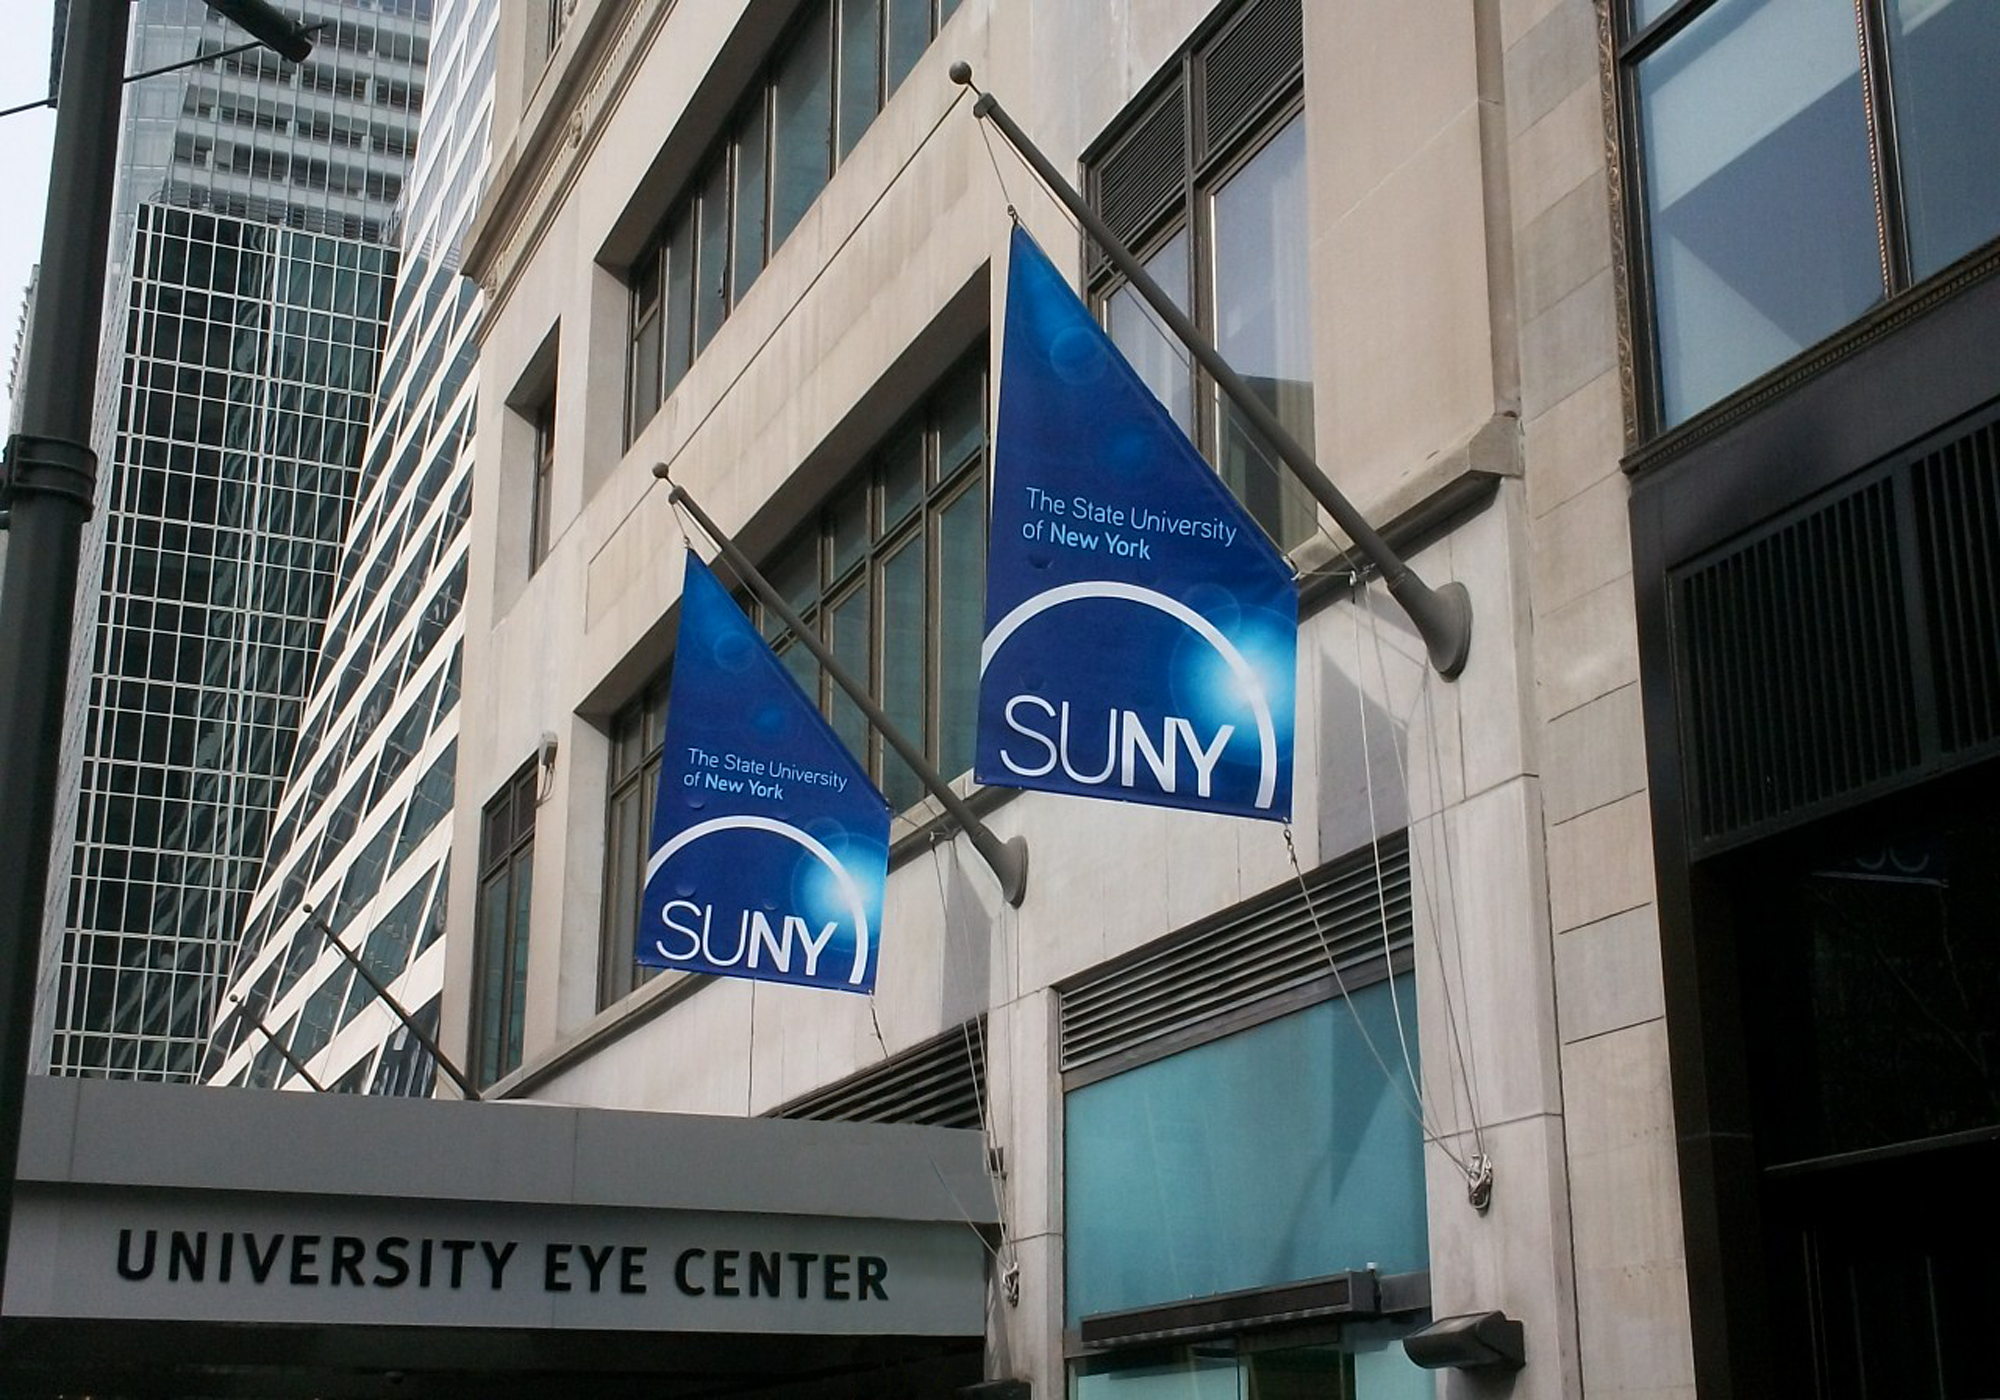 THE STATE UNIVERSITY <br>OF NEW YORK